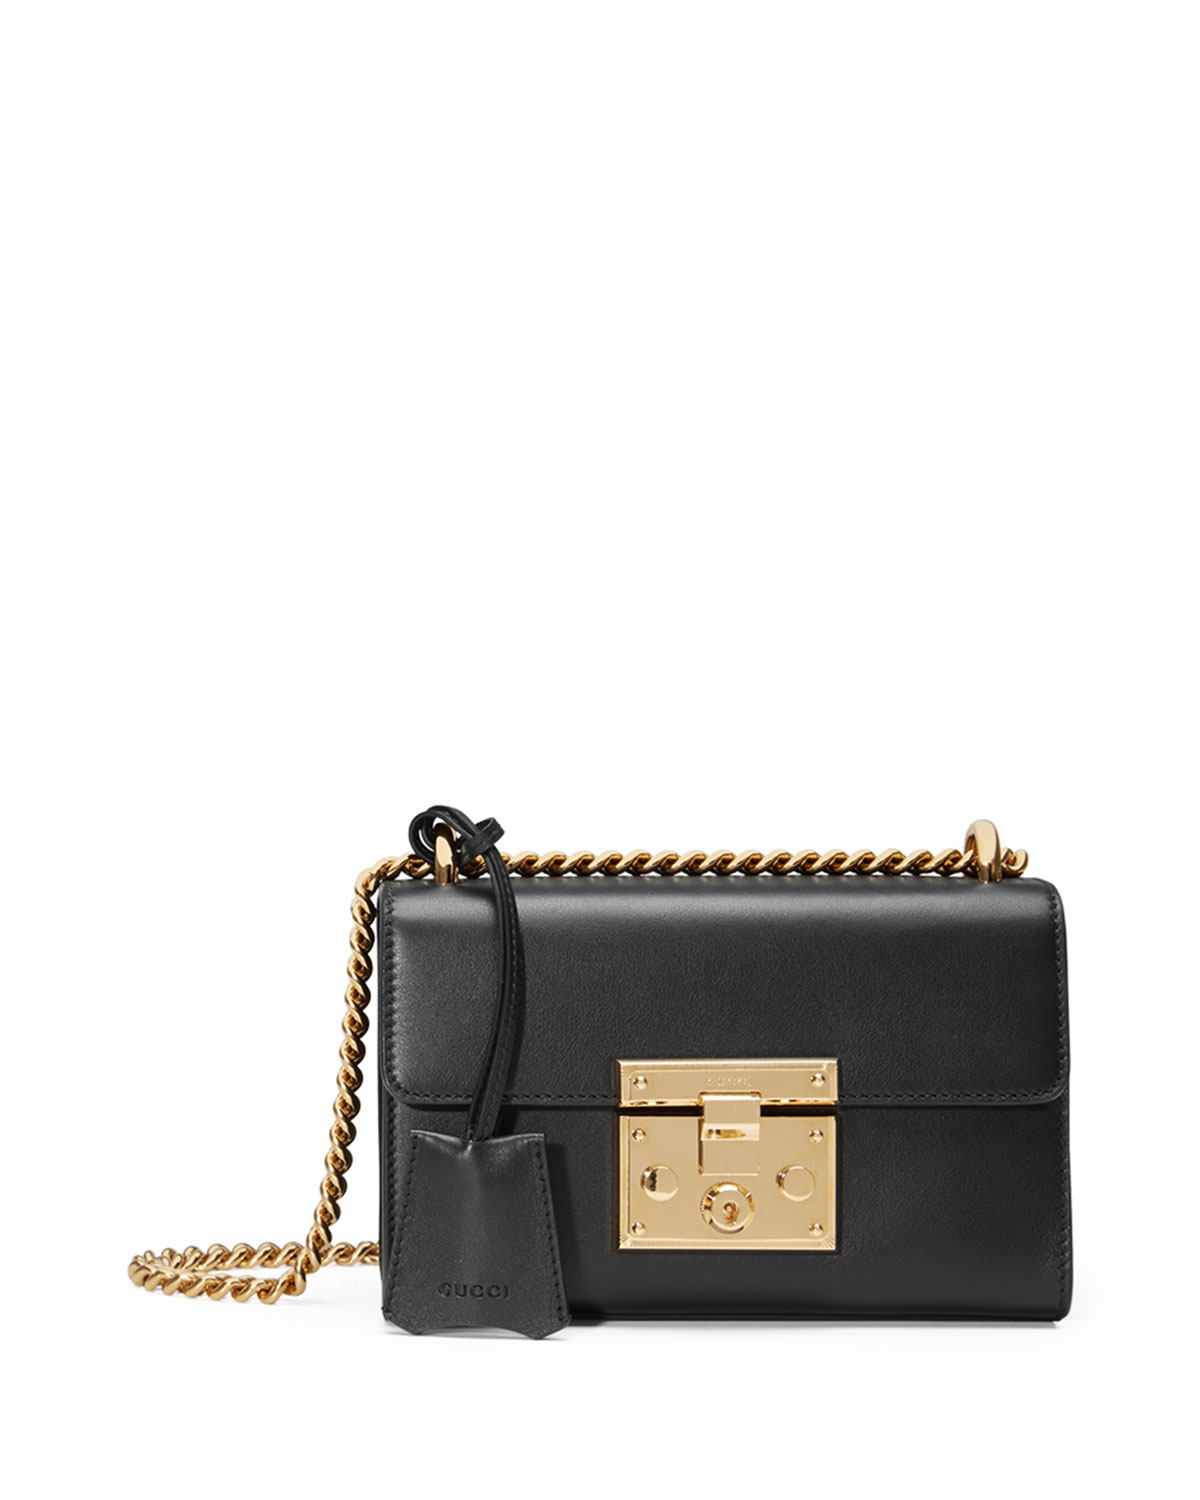 1320bed5f2 Gucci Padlock Small Leather Shoulder Bag, Black | Neiman Marcus